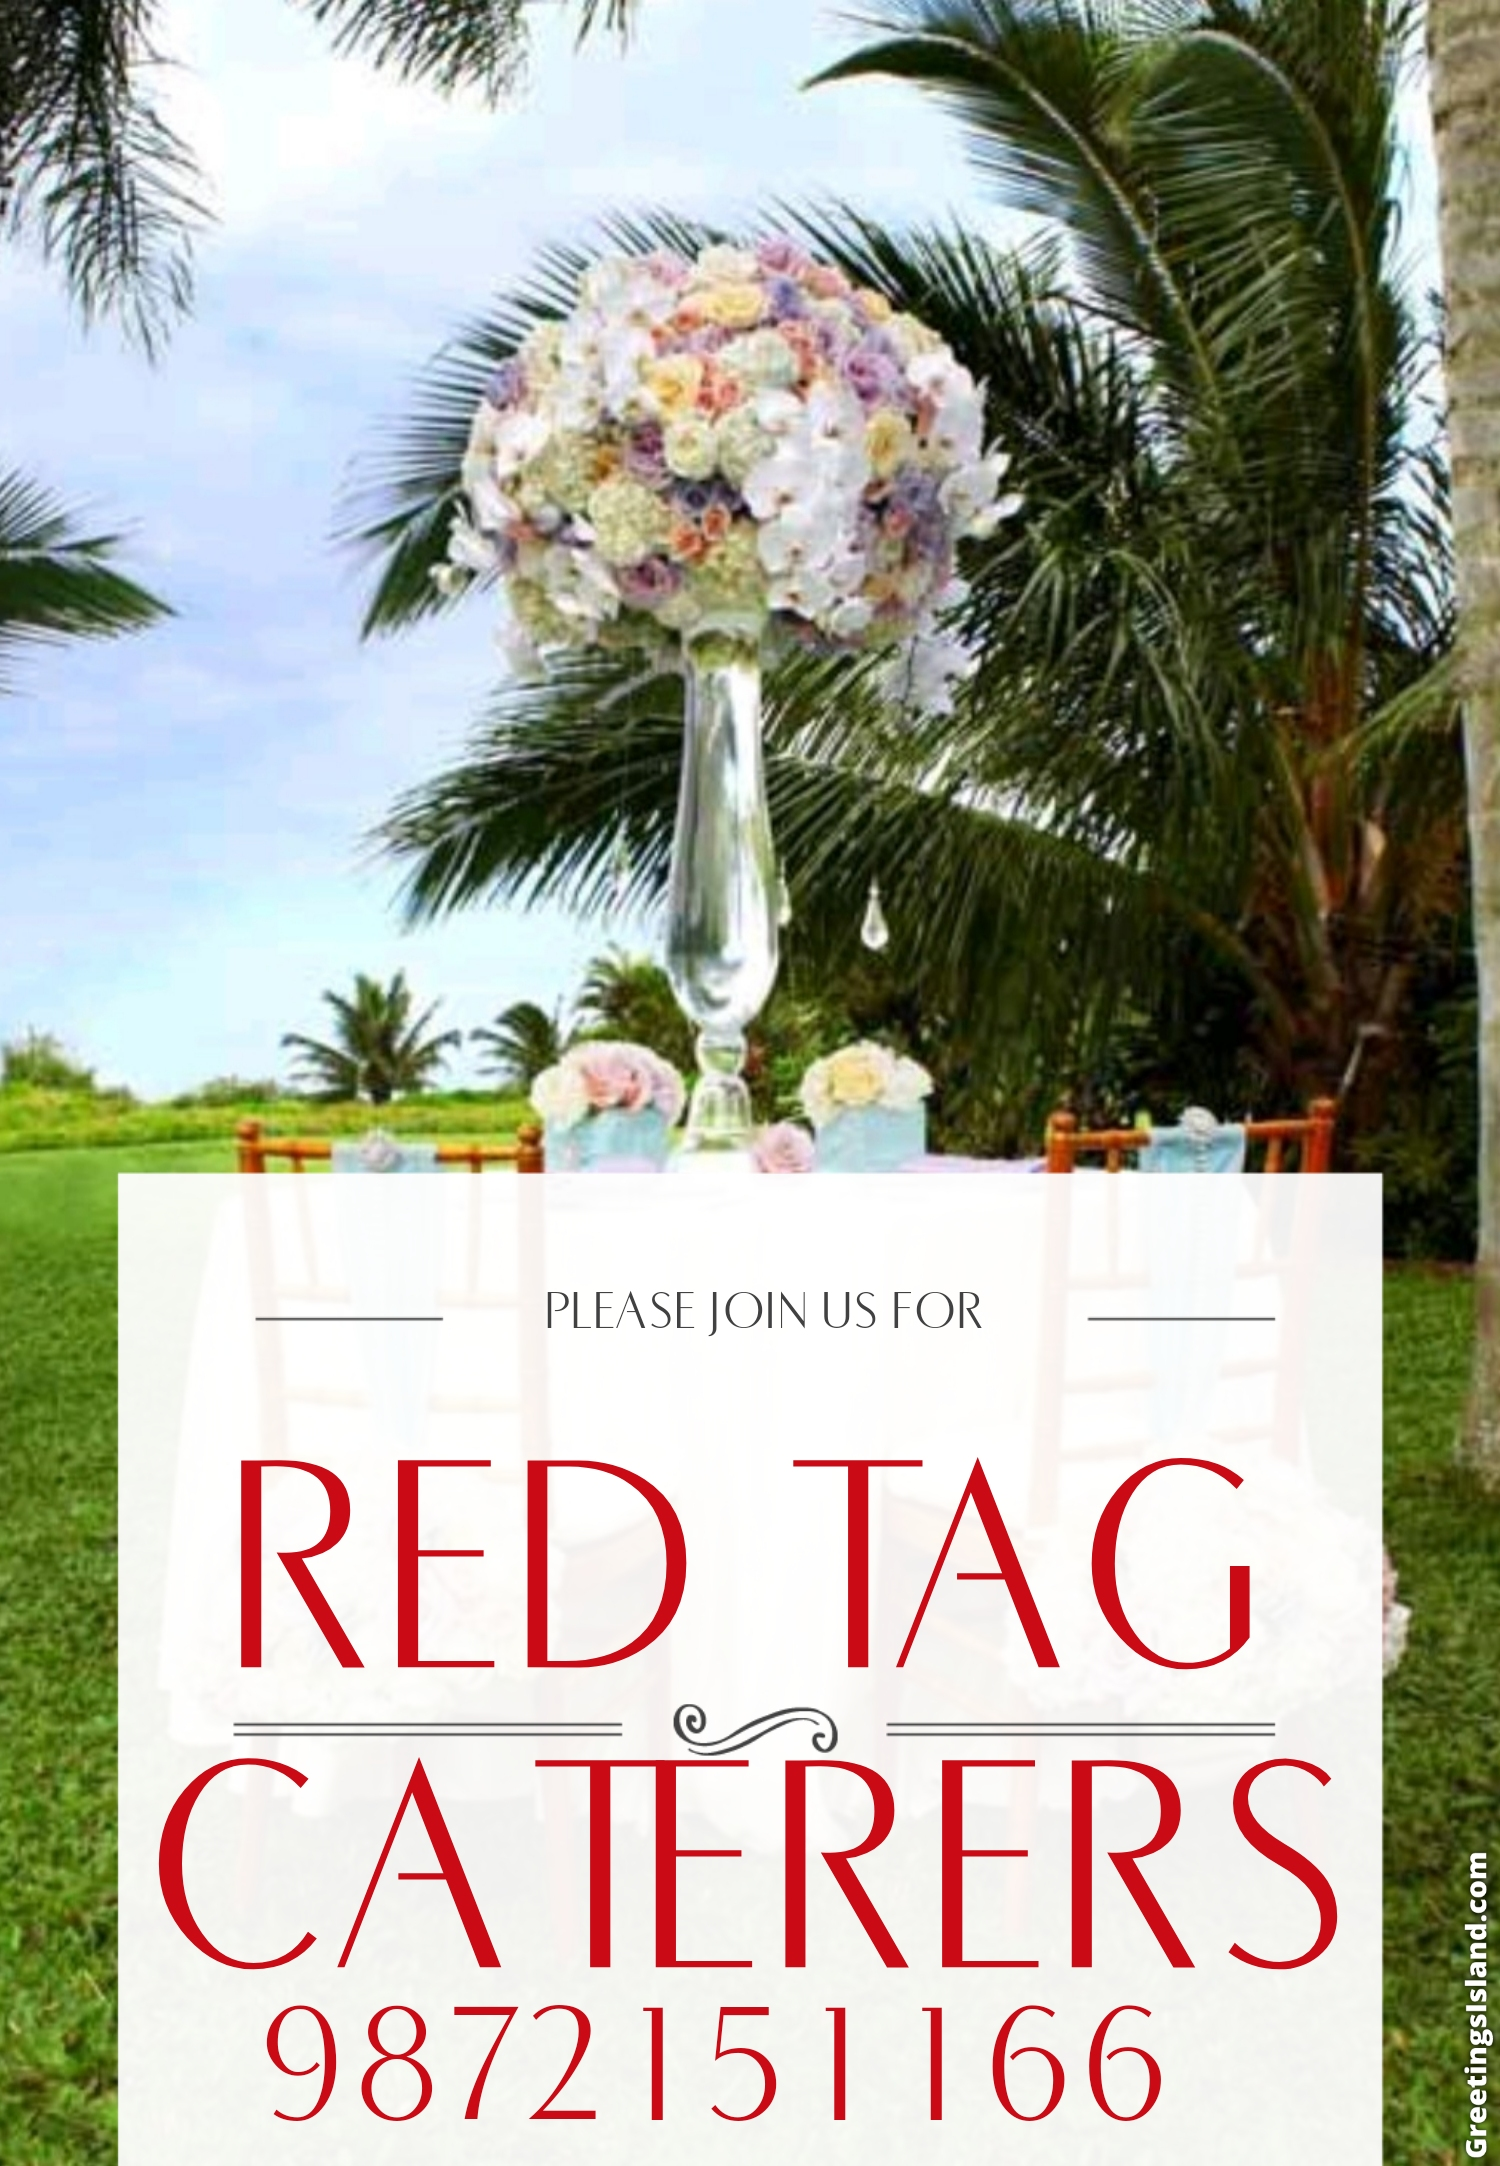 Red Tag Caterers, best wedding catering services in Mohali, catering company in Mohali, top caterer in Mohali, specialized caterers in Mohali,